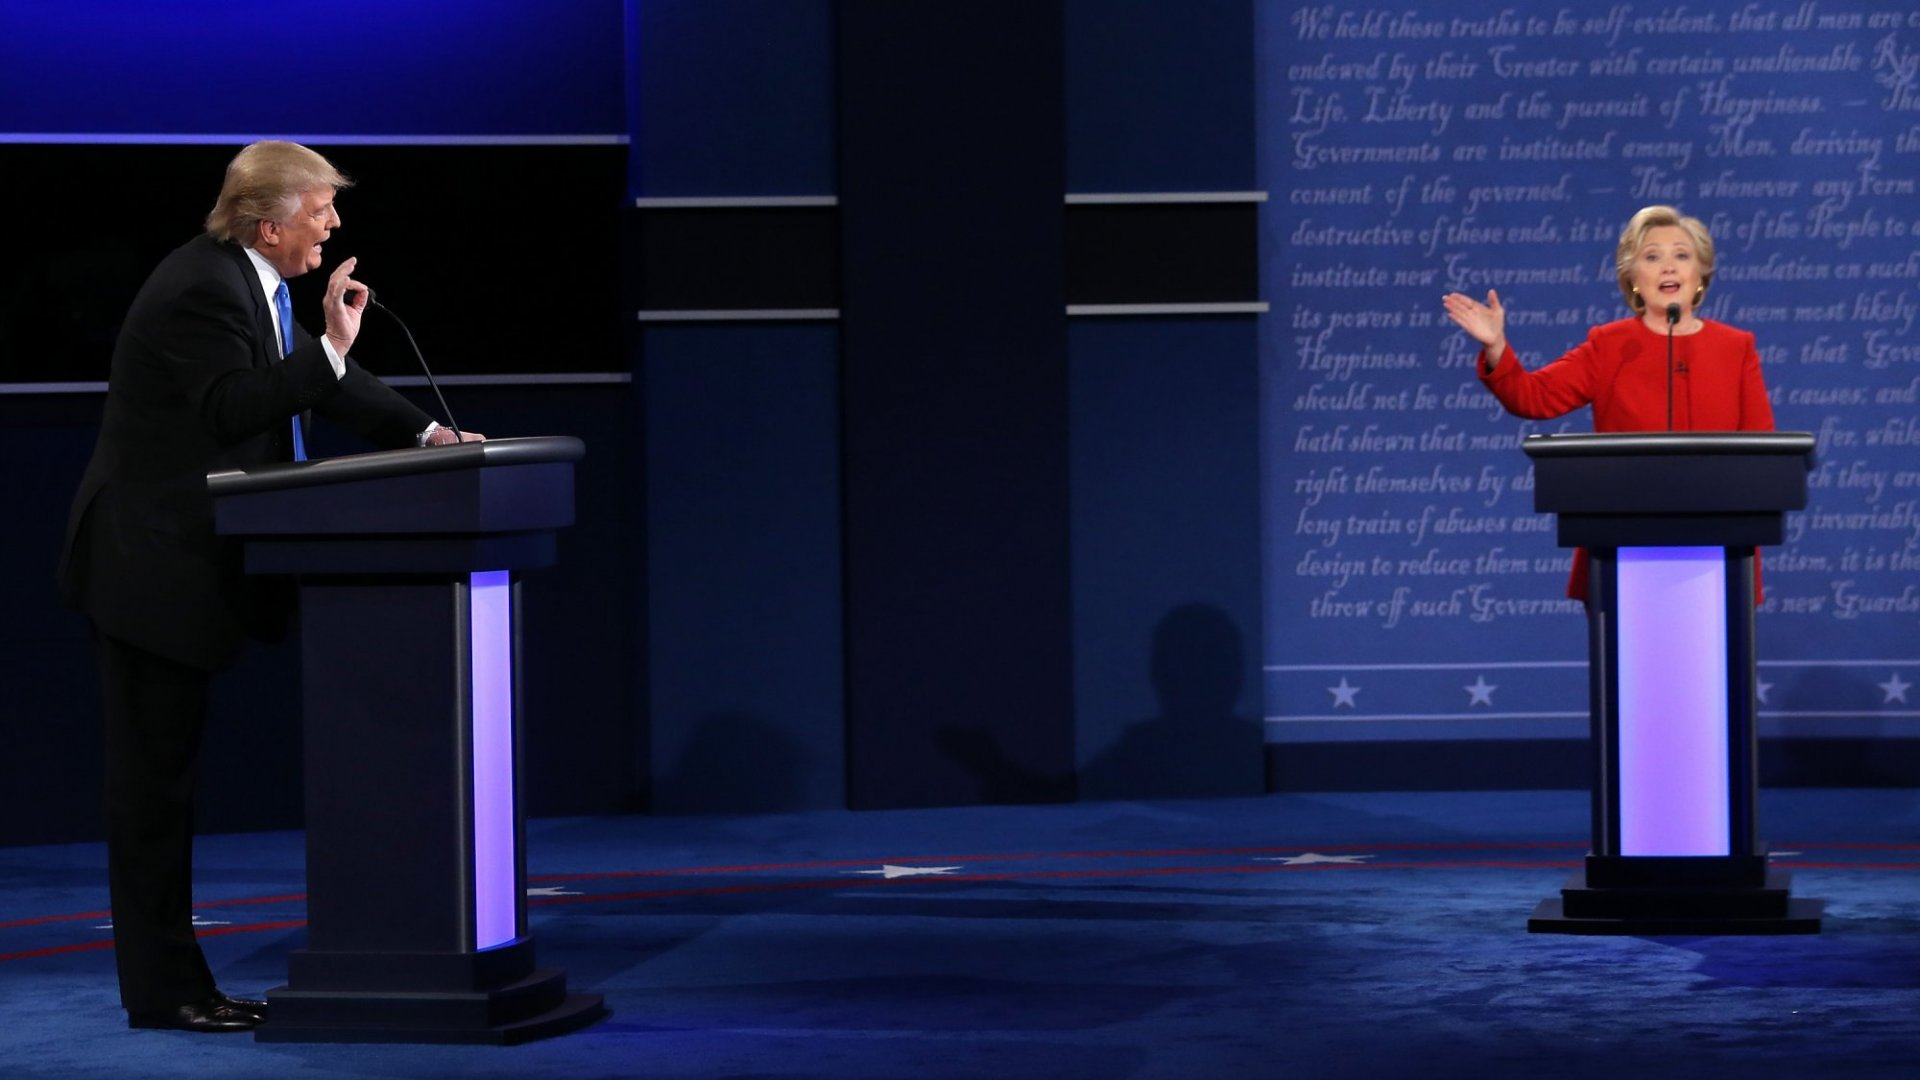 The Parts of the Presidential Debate That Drove Steve Case, Shonda Rhimes, and Marcus Lemonis Kind Of Crazy